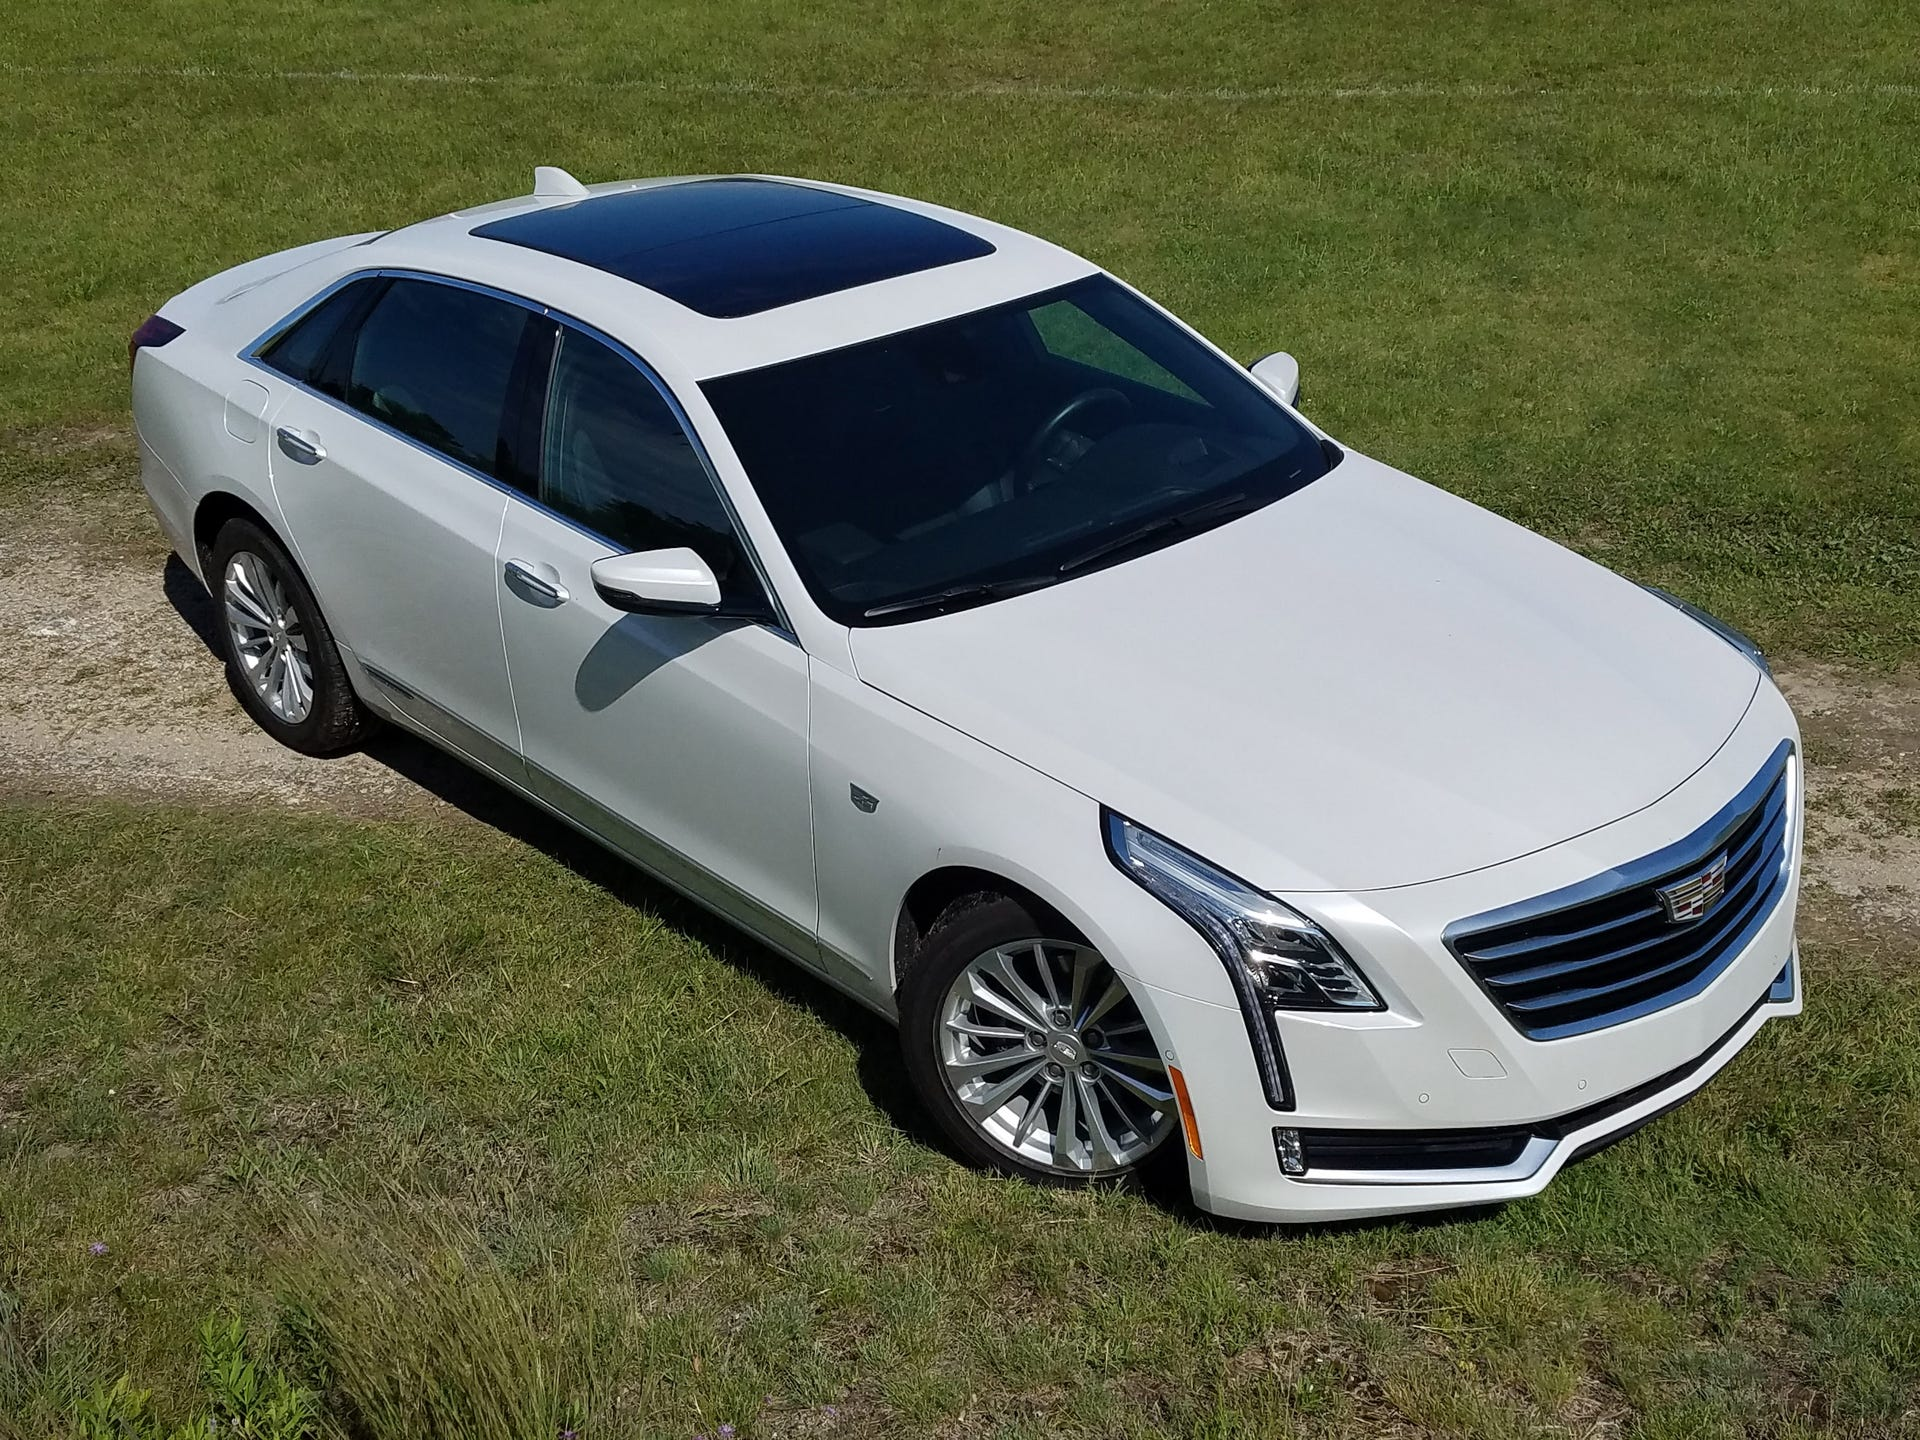 At A Single Price 76 090 The Cadillac Ct6 Plug In